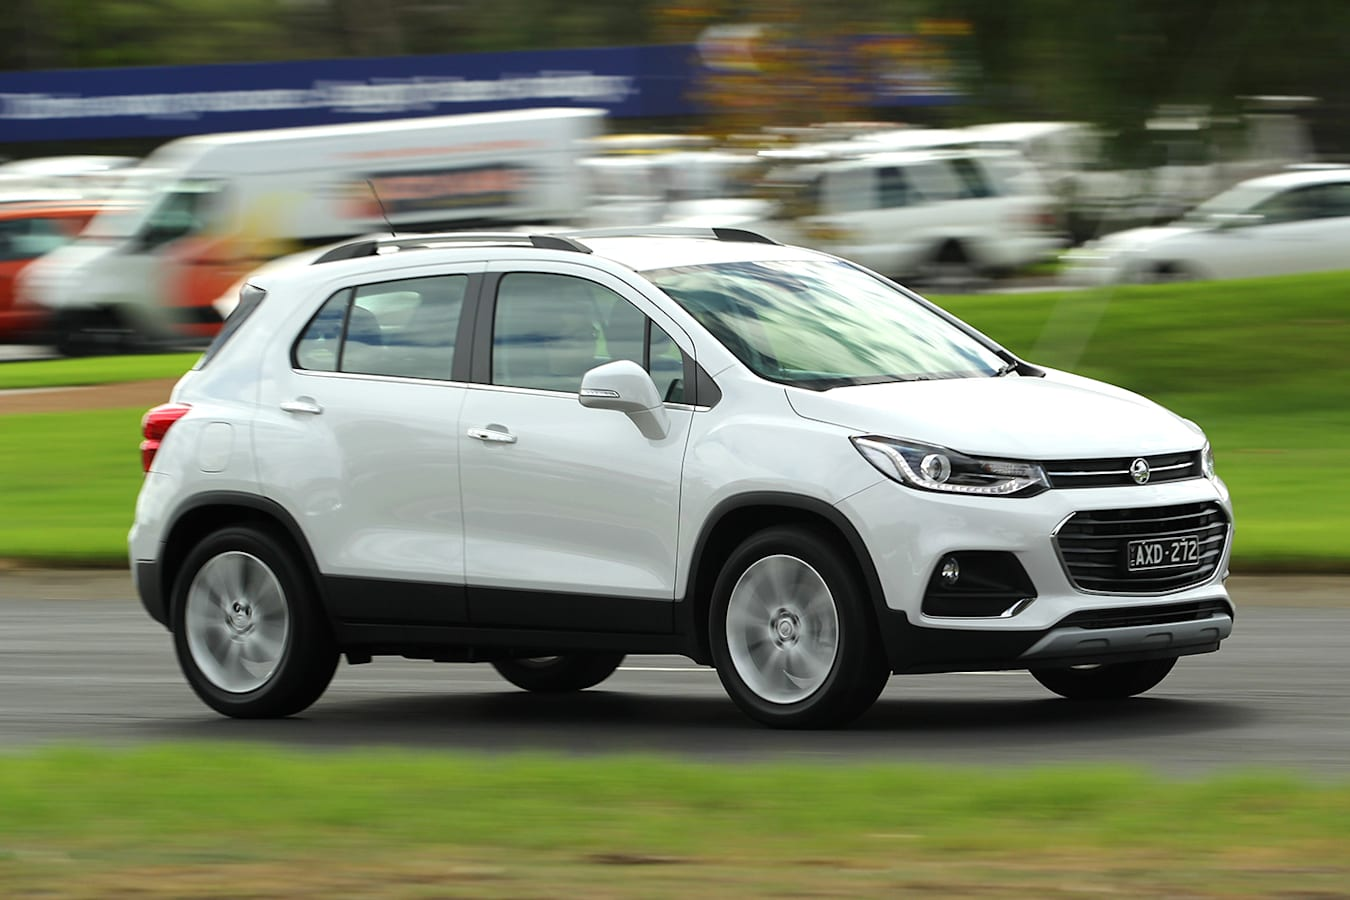 2019 Holden Trax Ltz Review Front Side Action 281 29 Jpg